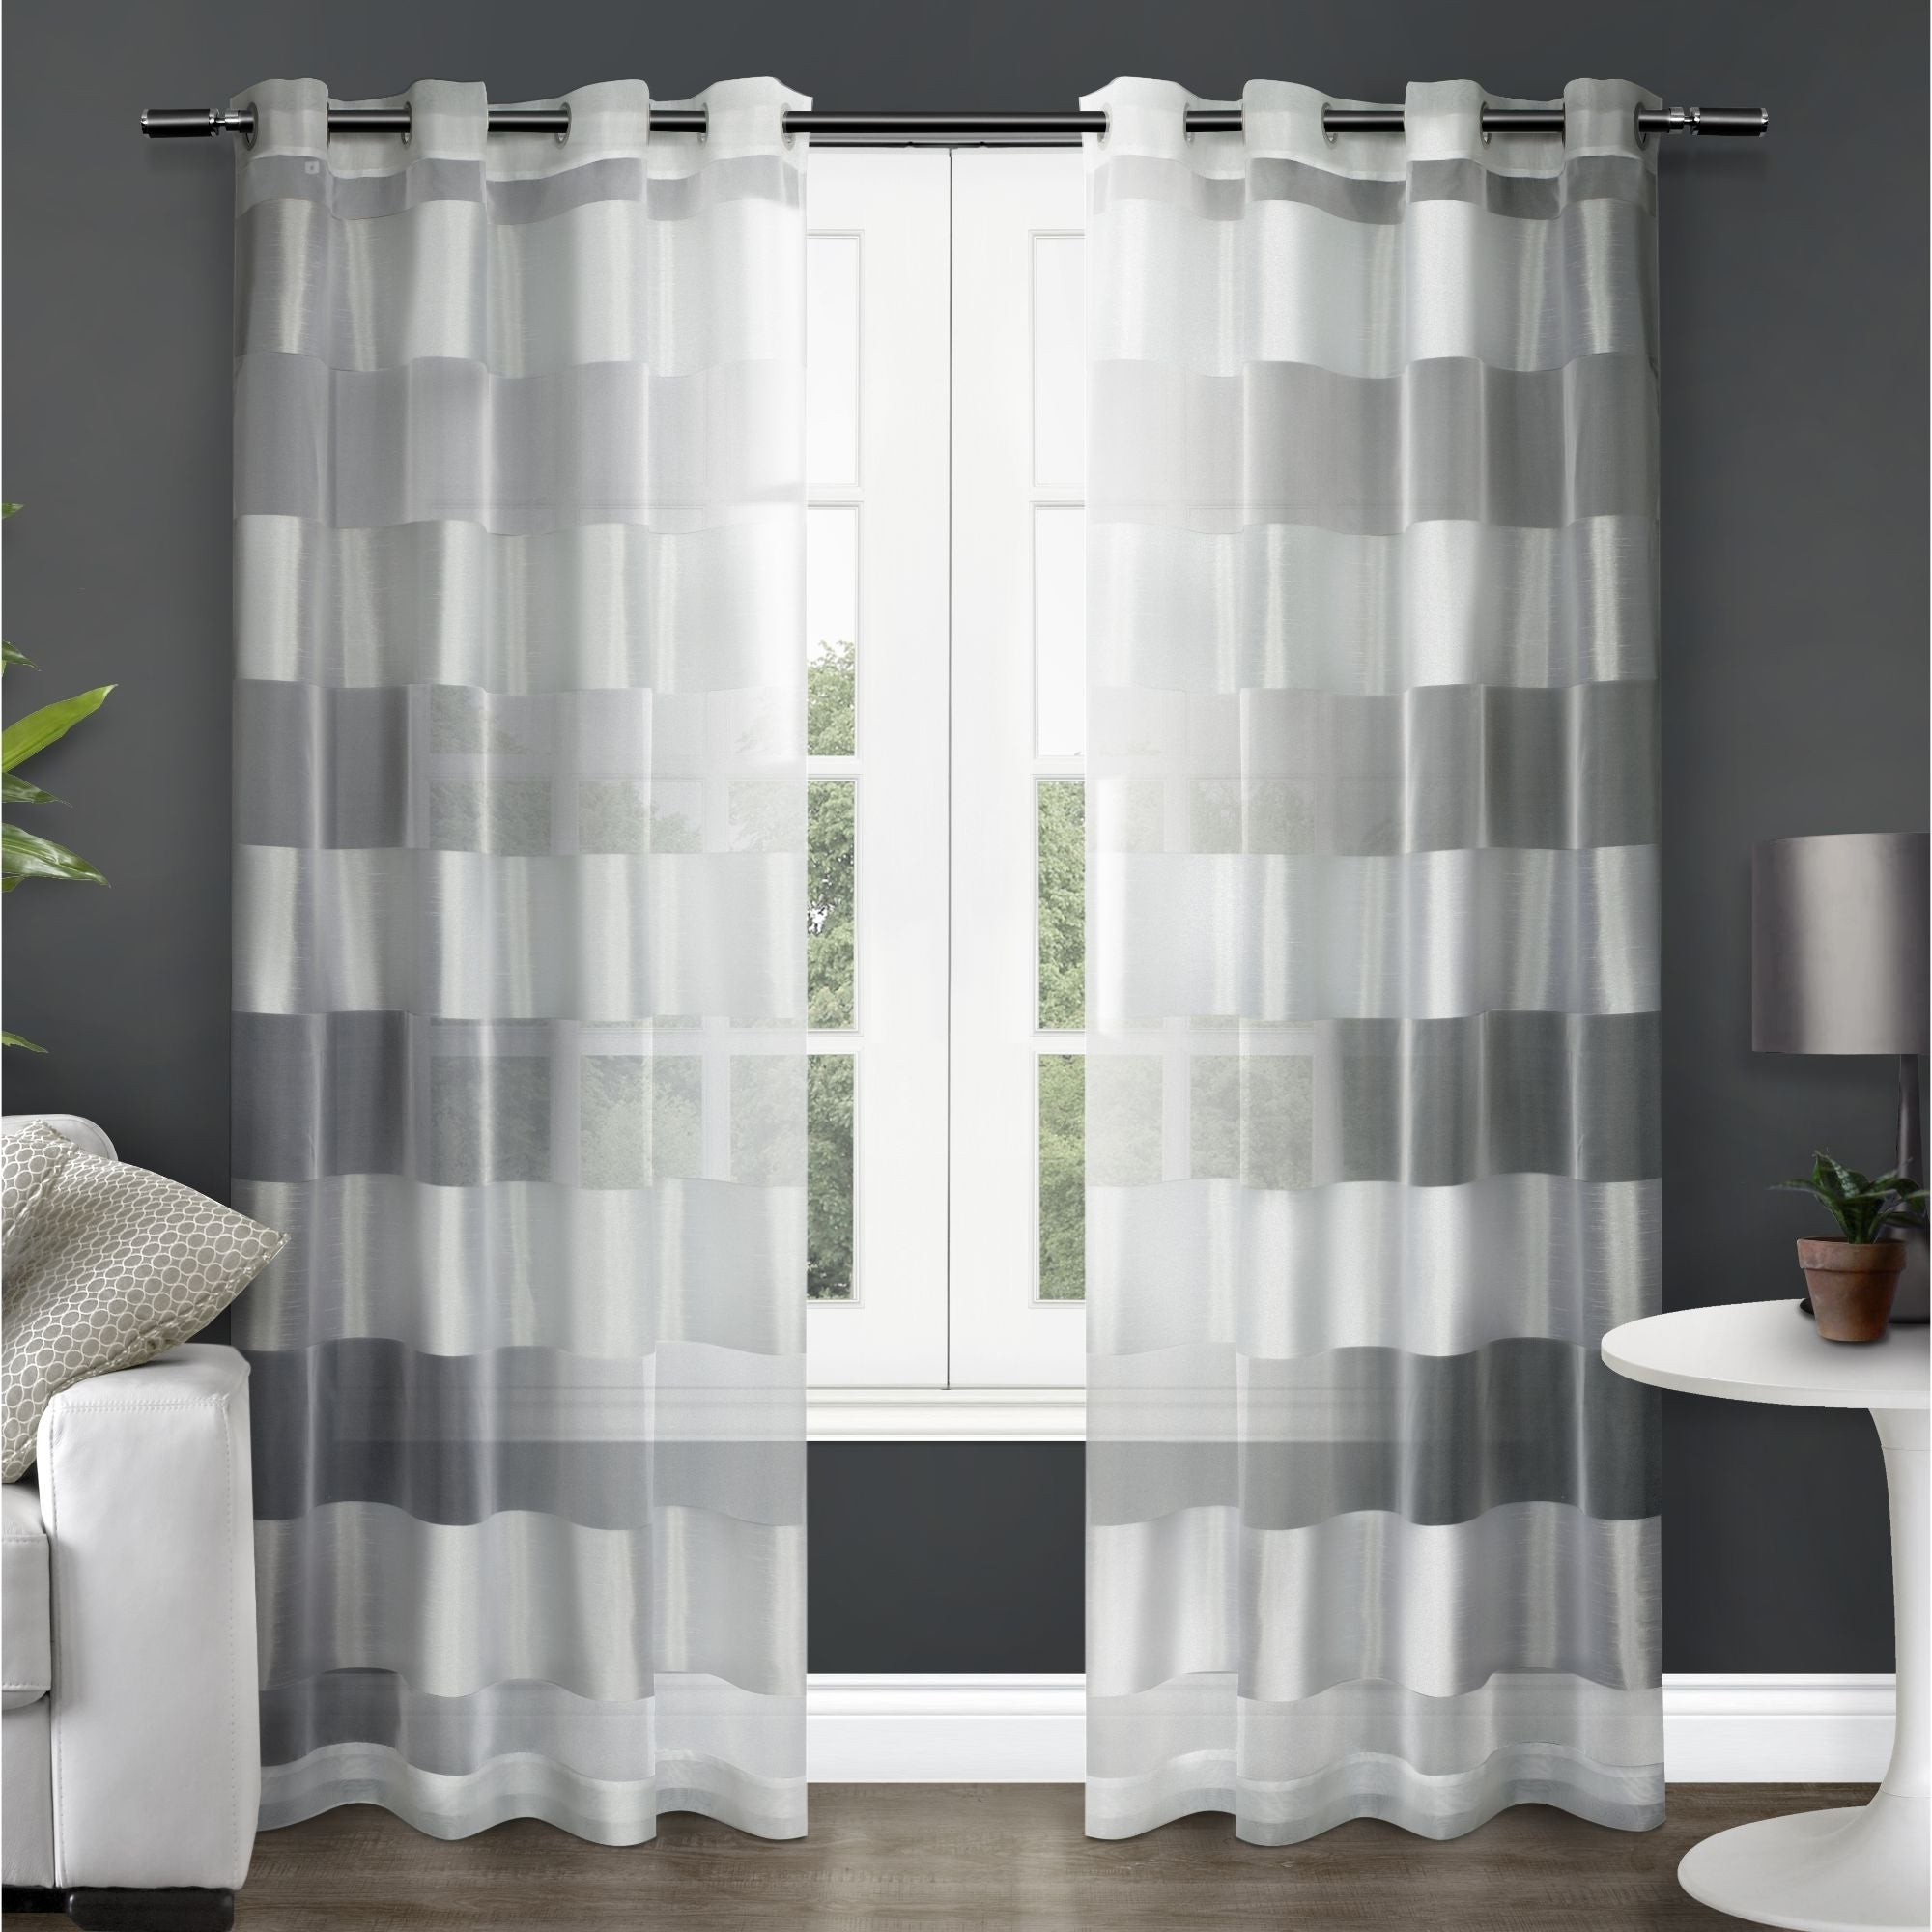 Wilshire Burnout Grommet Top Curtain Panel Pairs With Regard To Preferred Copper Grove Radomir Striped Sheer Grommet Top Curtain Panel Pair (View 3 of 20)